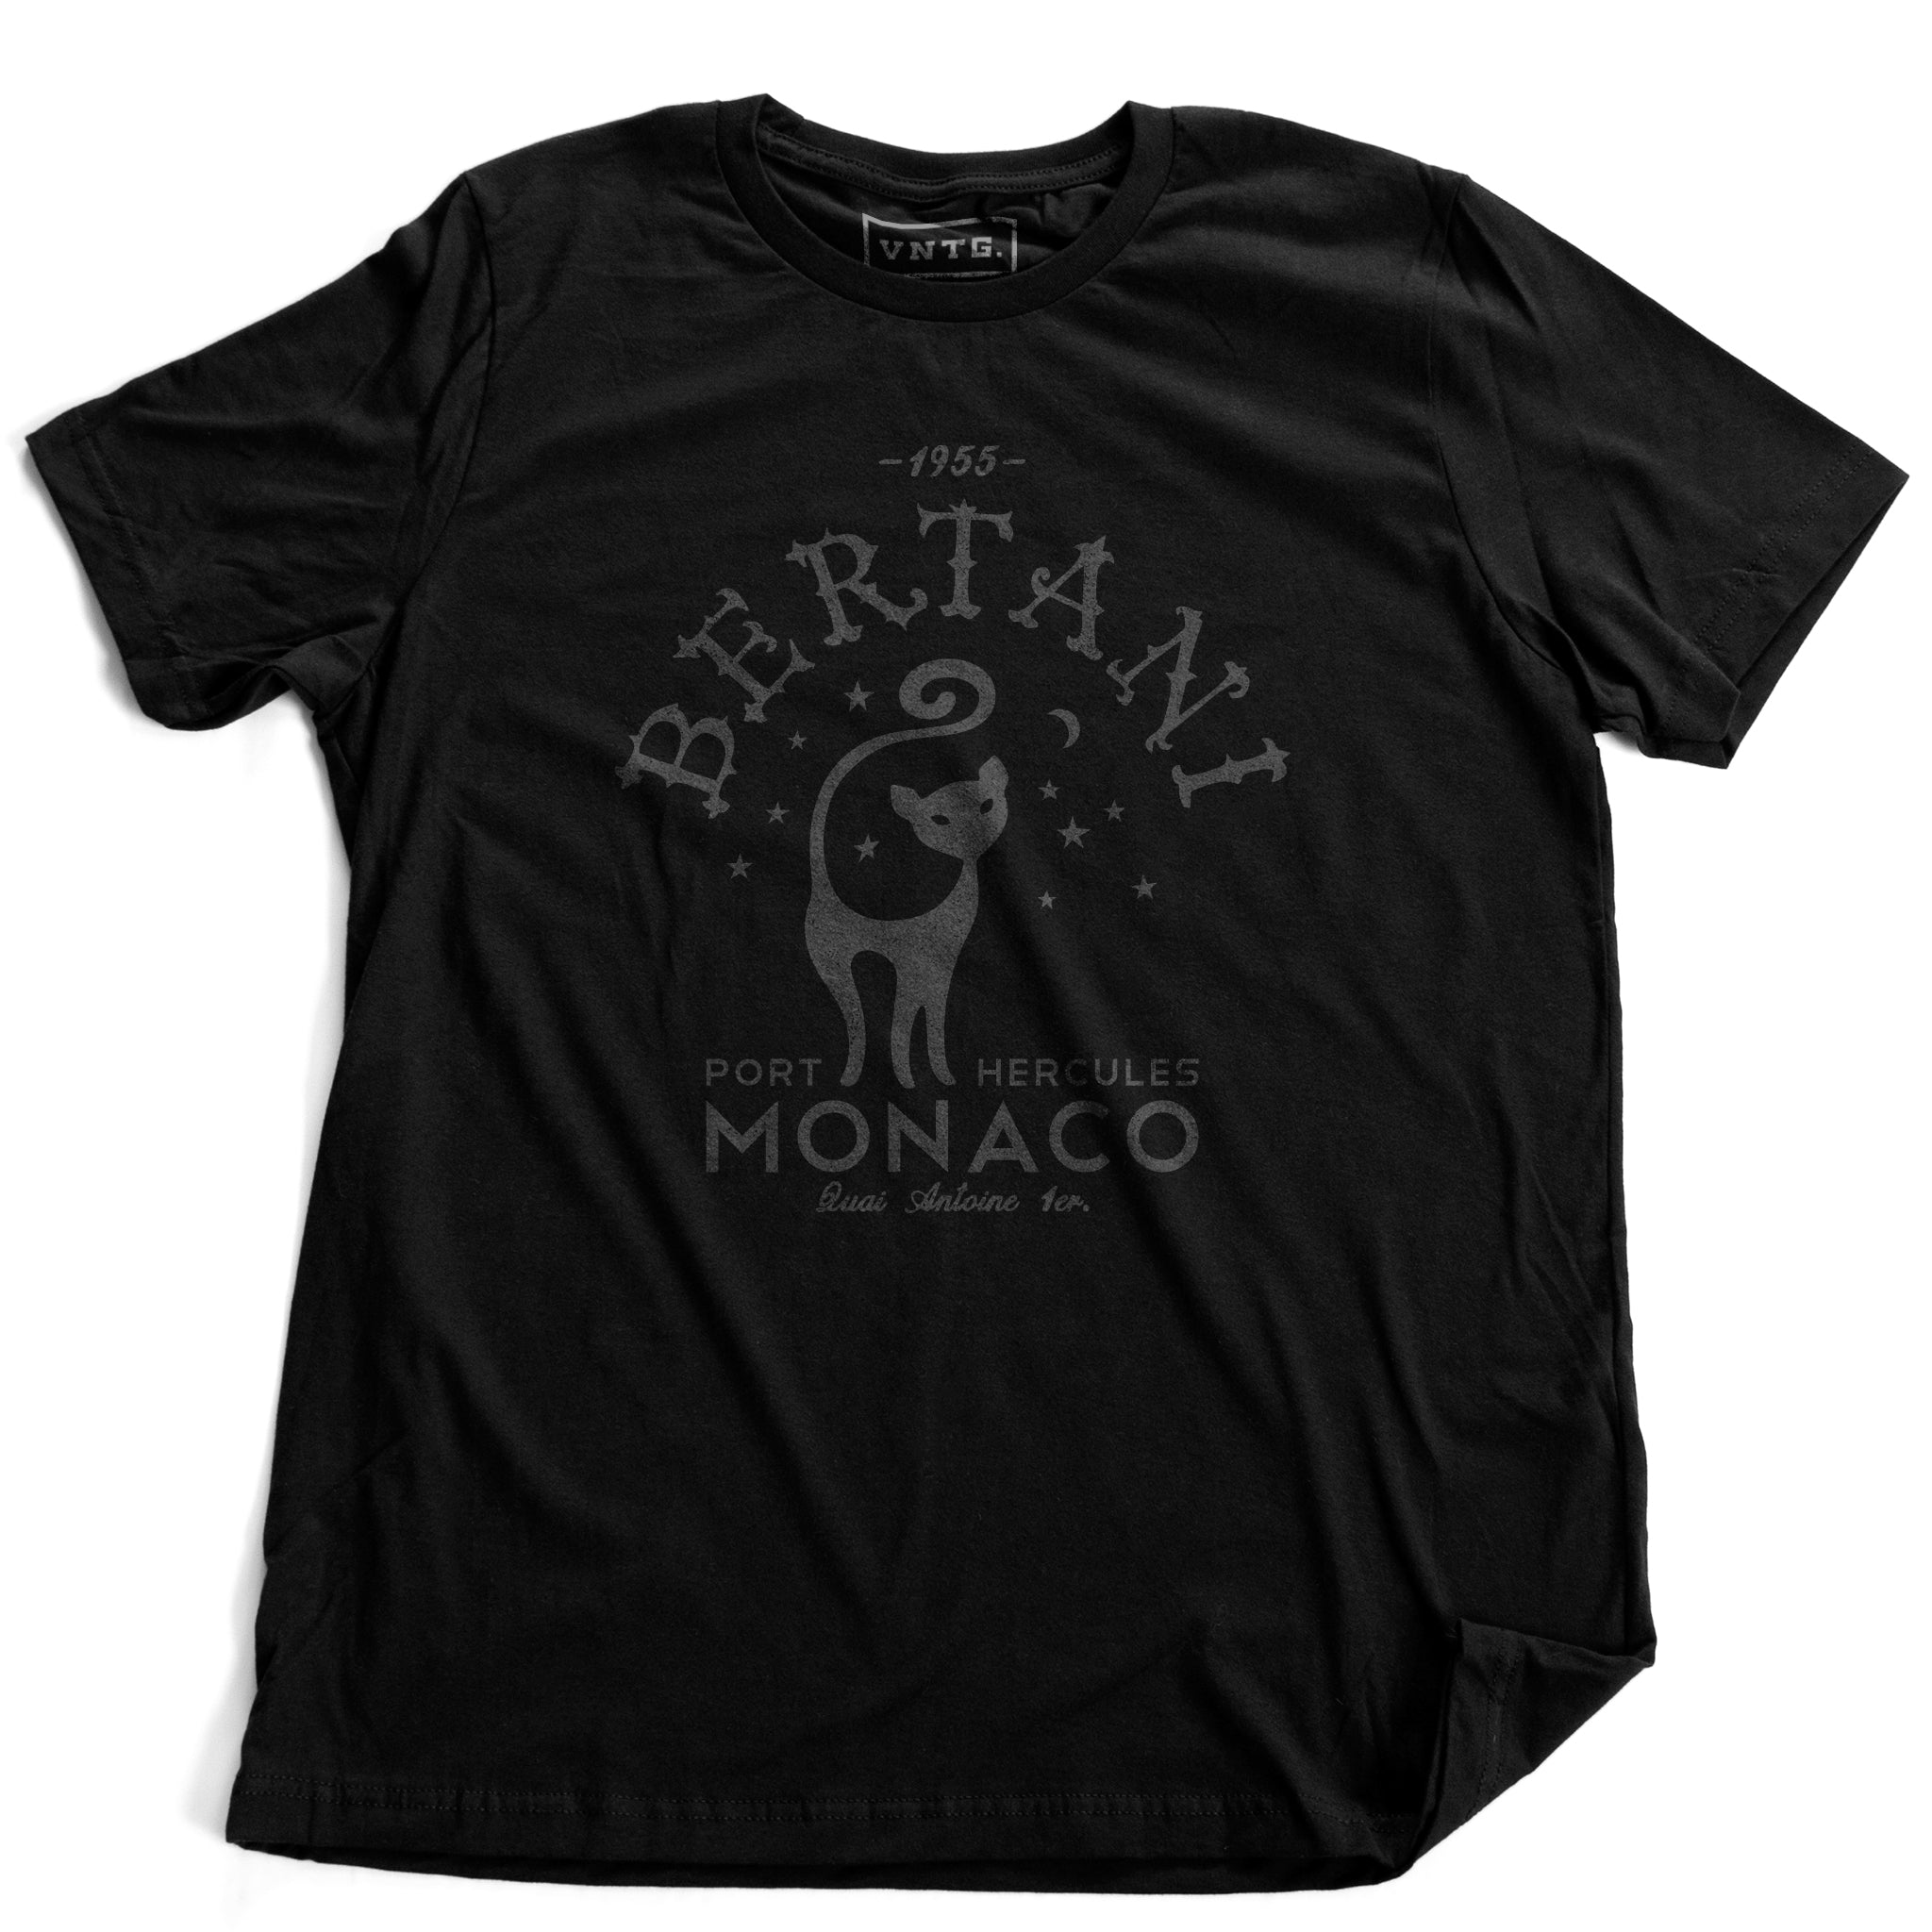 A vintage-look, retro t-shirt that was inspired by the Alfred Hitchcock film To Catch a Thief, and is a tribute to the restaurant Bertani owned by the friend of Cary Grant's character in the film. It features old worlds typography around the image of a cat, meant to symbolize 'John Robie The Cat'—the infamous cat burglar portrayed by Grant and loved by Grace Kelly. This shirt is elegant in Classic black, by fashion brand VNTG., from wolfsaint.net